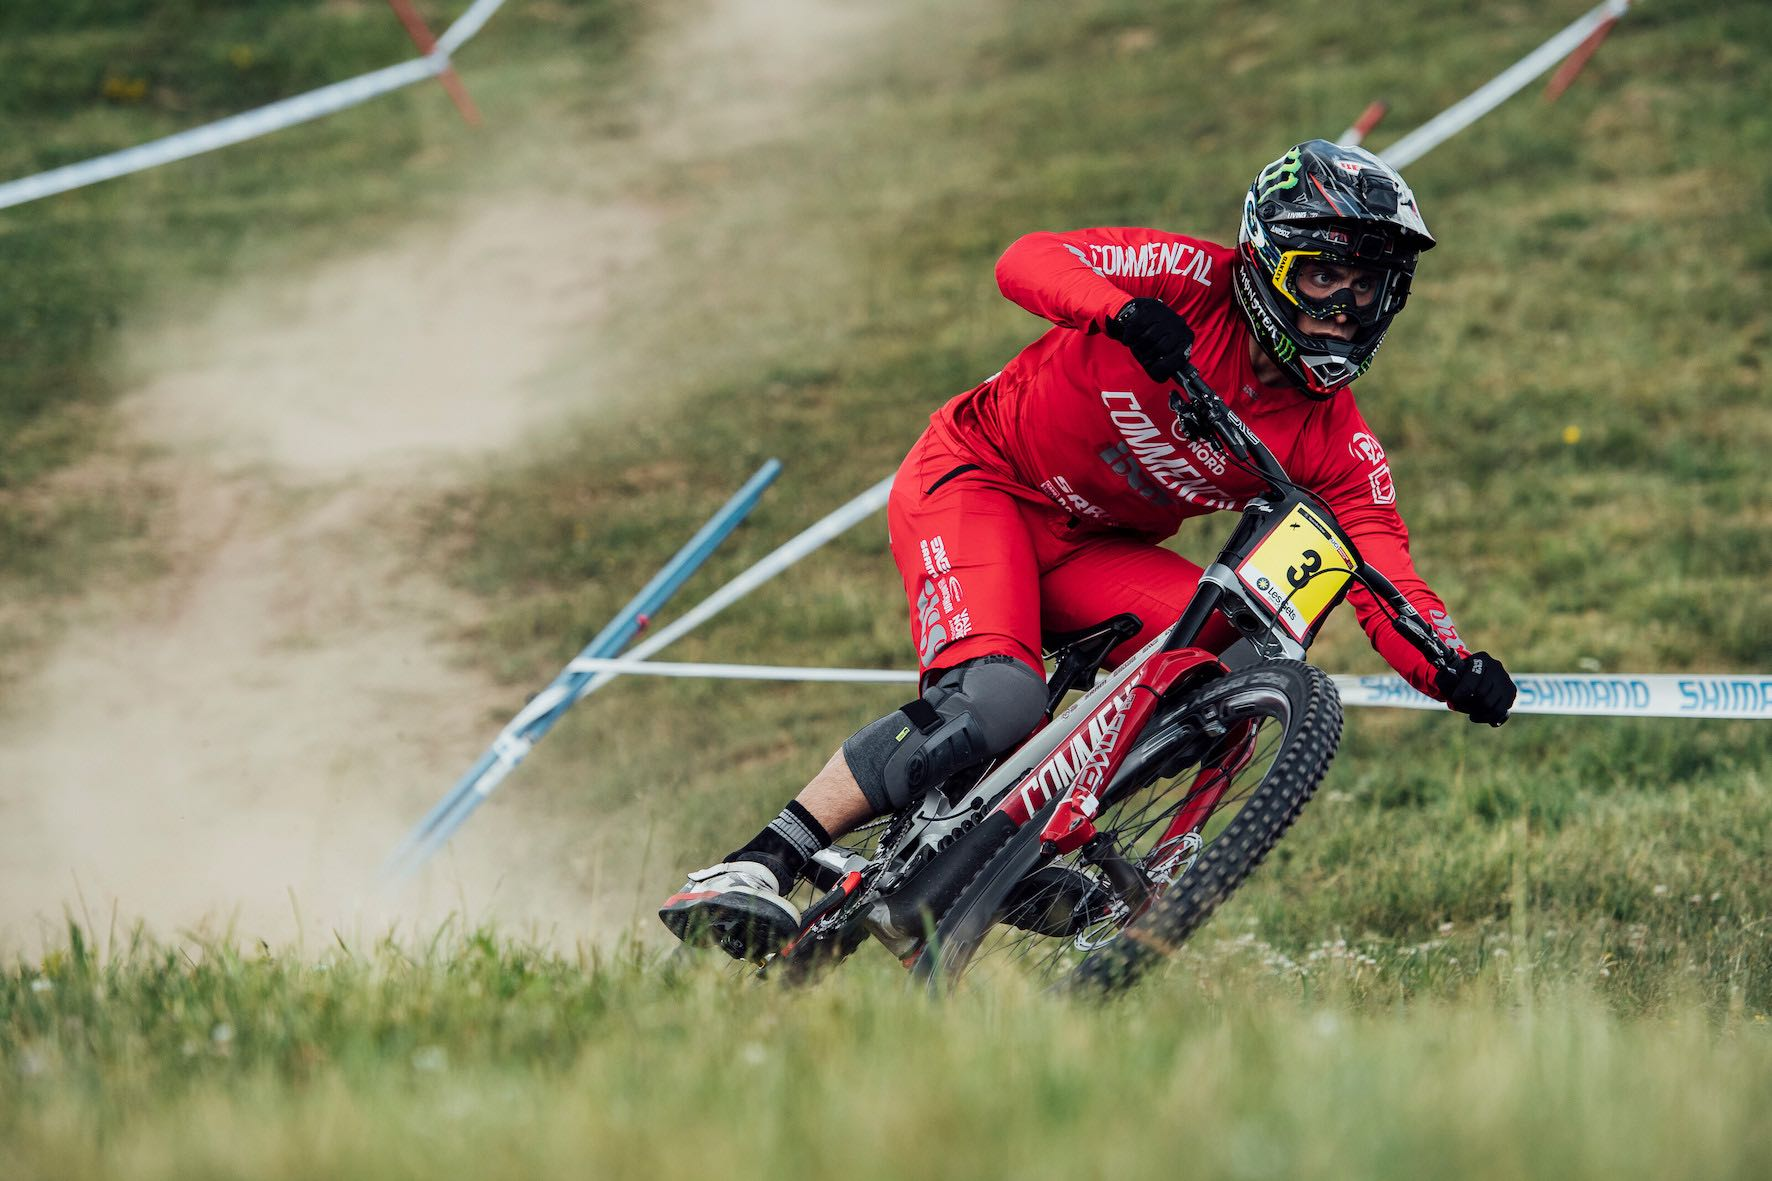 Amaury Pierron racing in the 2019 Les Gets Downhill MTB World Cup